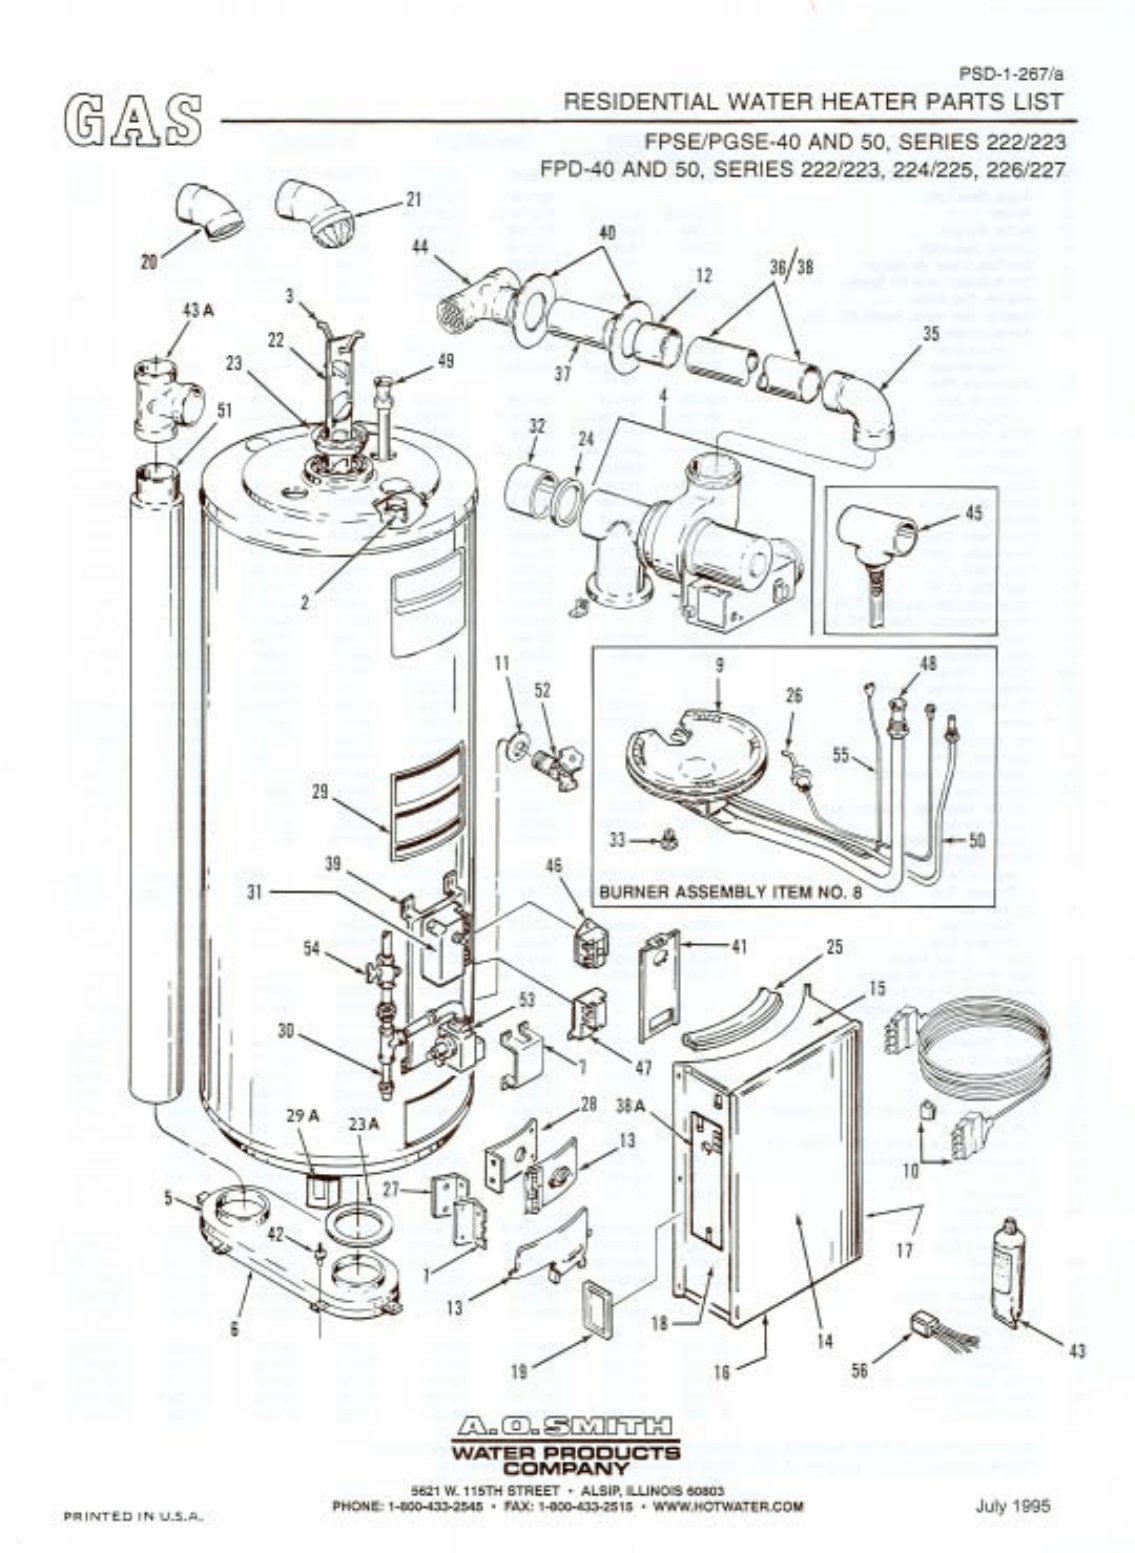 A O Smith Water Heater Fpse Pgse 50 User Guide